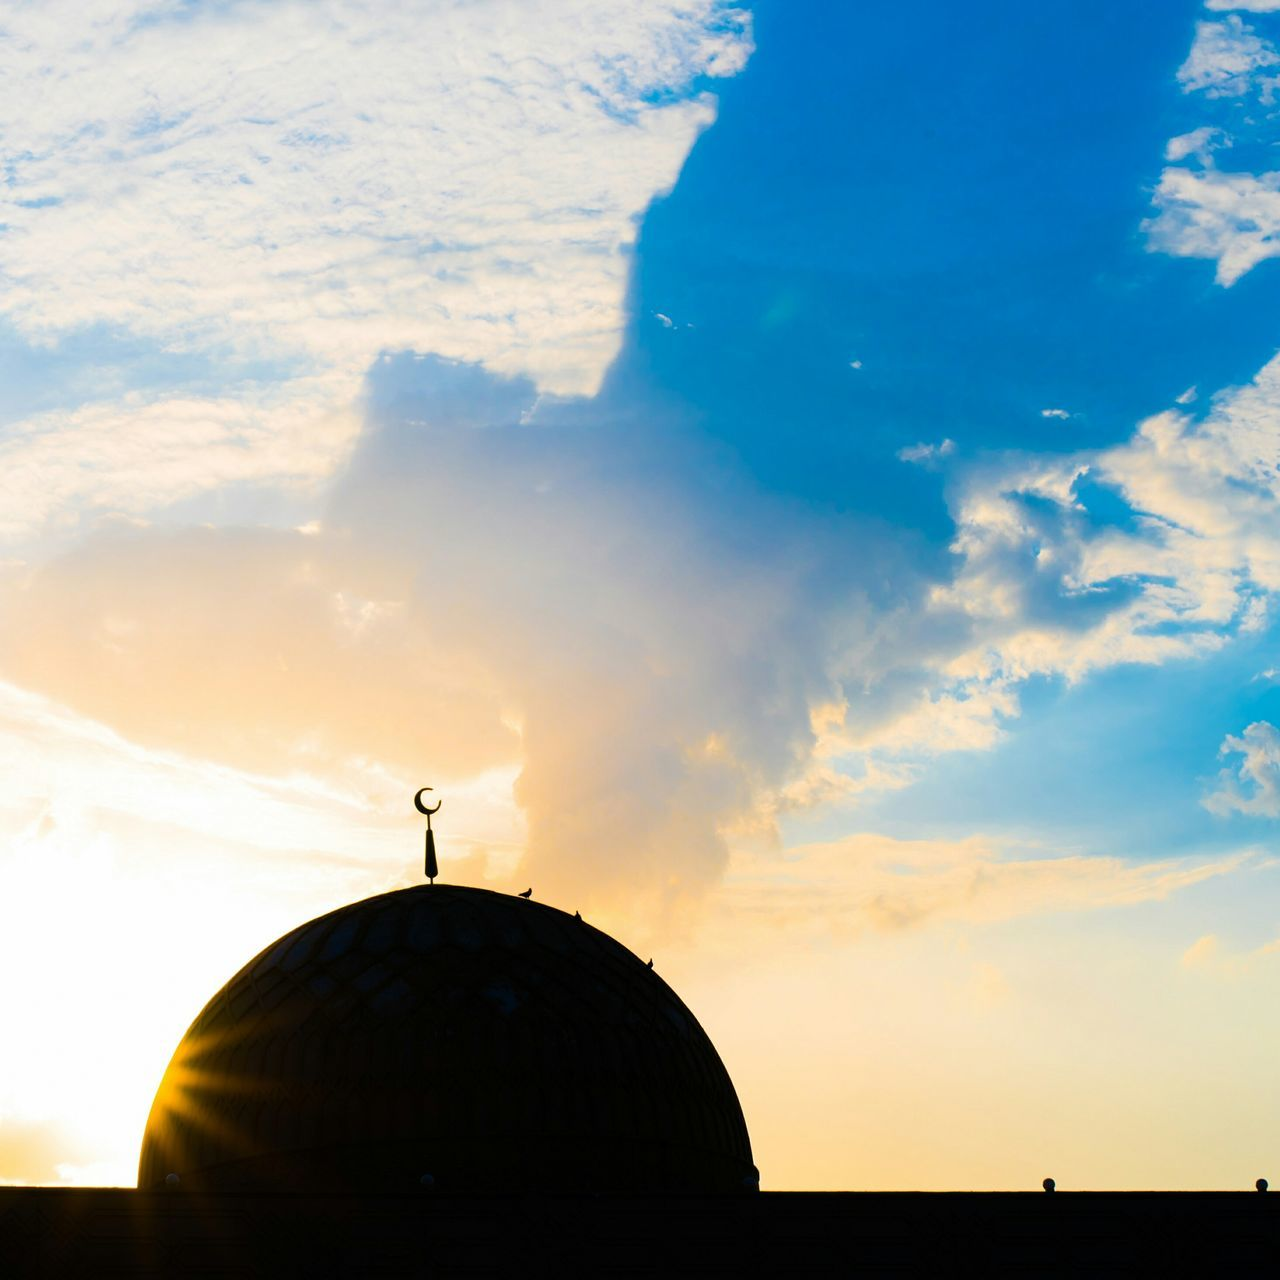 Low Angle View Of Silhouette Mosque Dome Against Sky